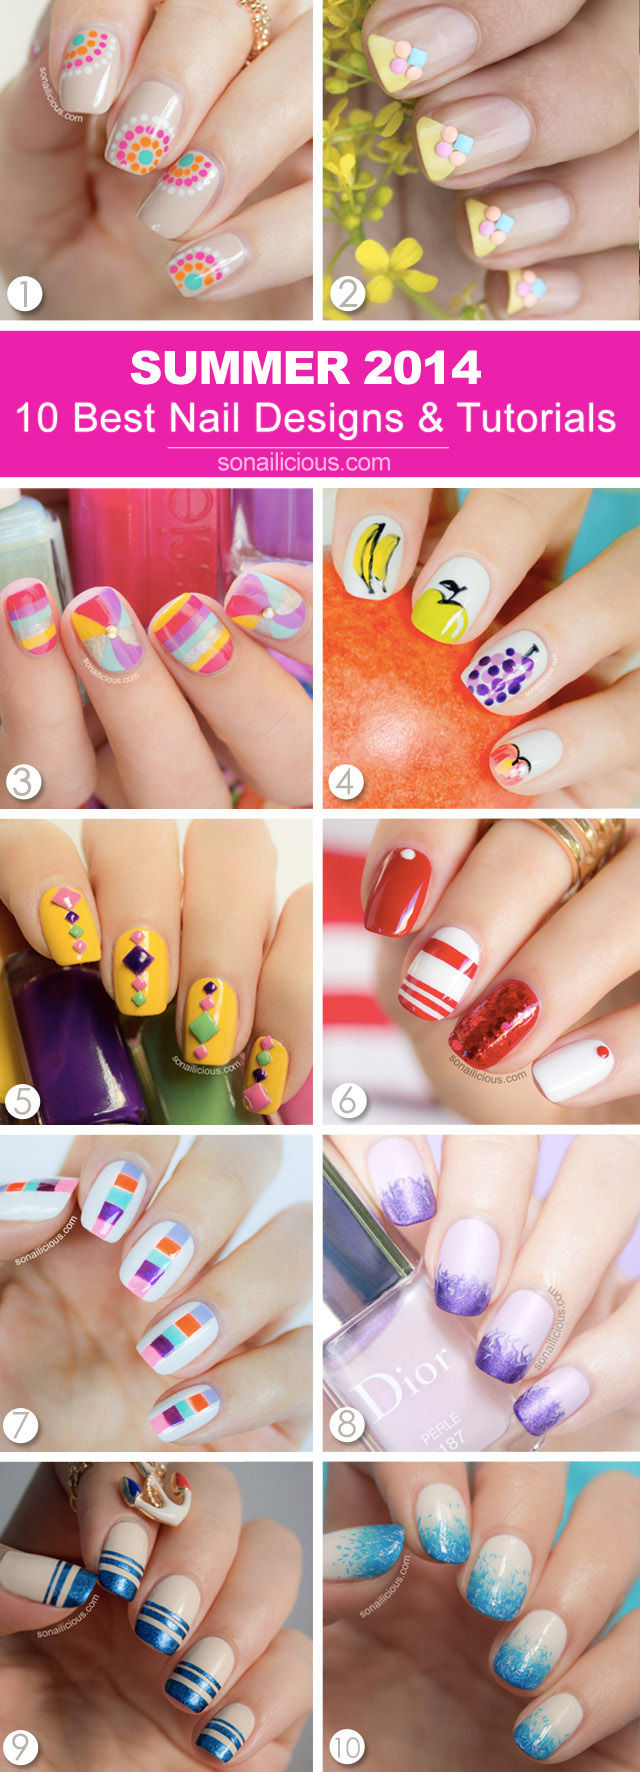 best nails summer 2014